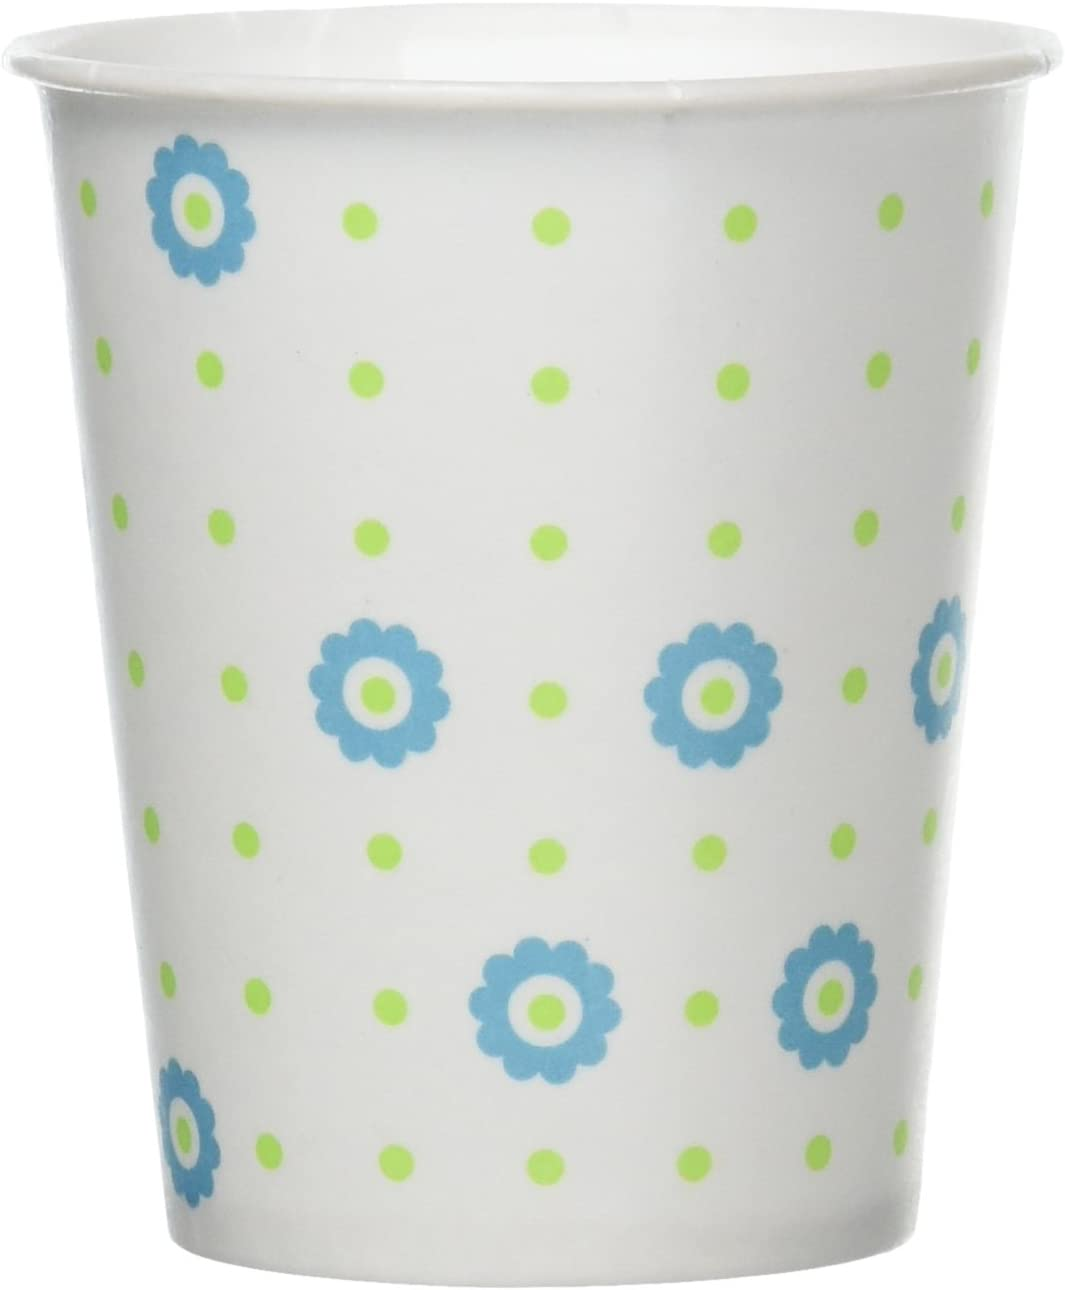 Member's Mark Paper Cold Cups, 5 Ounce, 450 Count